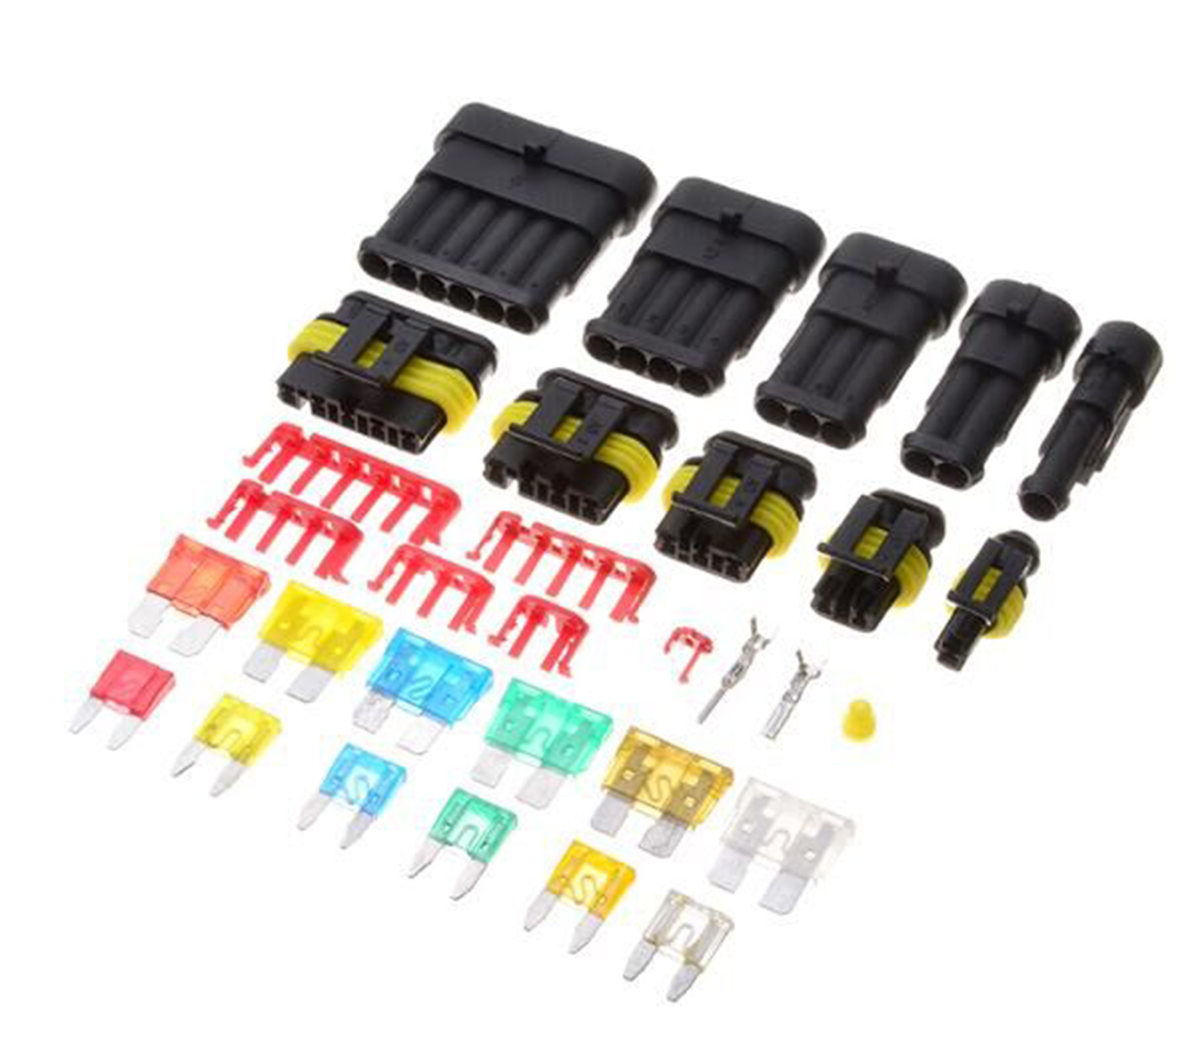 240pcs Waterproof Car Electrical Connector 1/2/3/4/5/6 Pin Way Terminals with Mini Automotive Blade Fuses Mayitr цена и фото